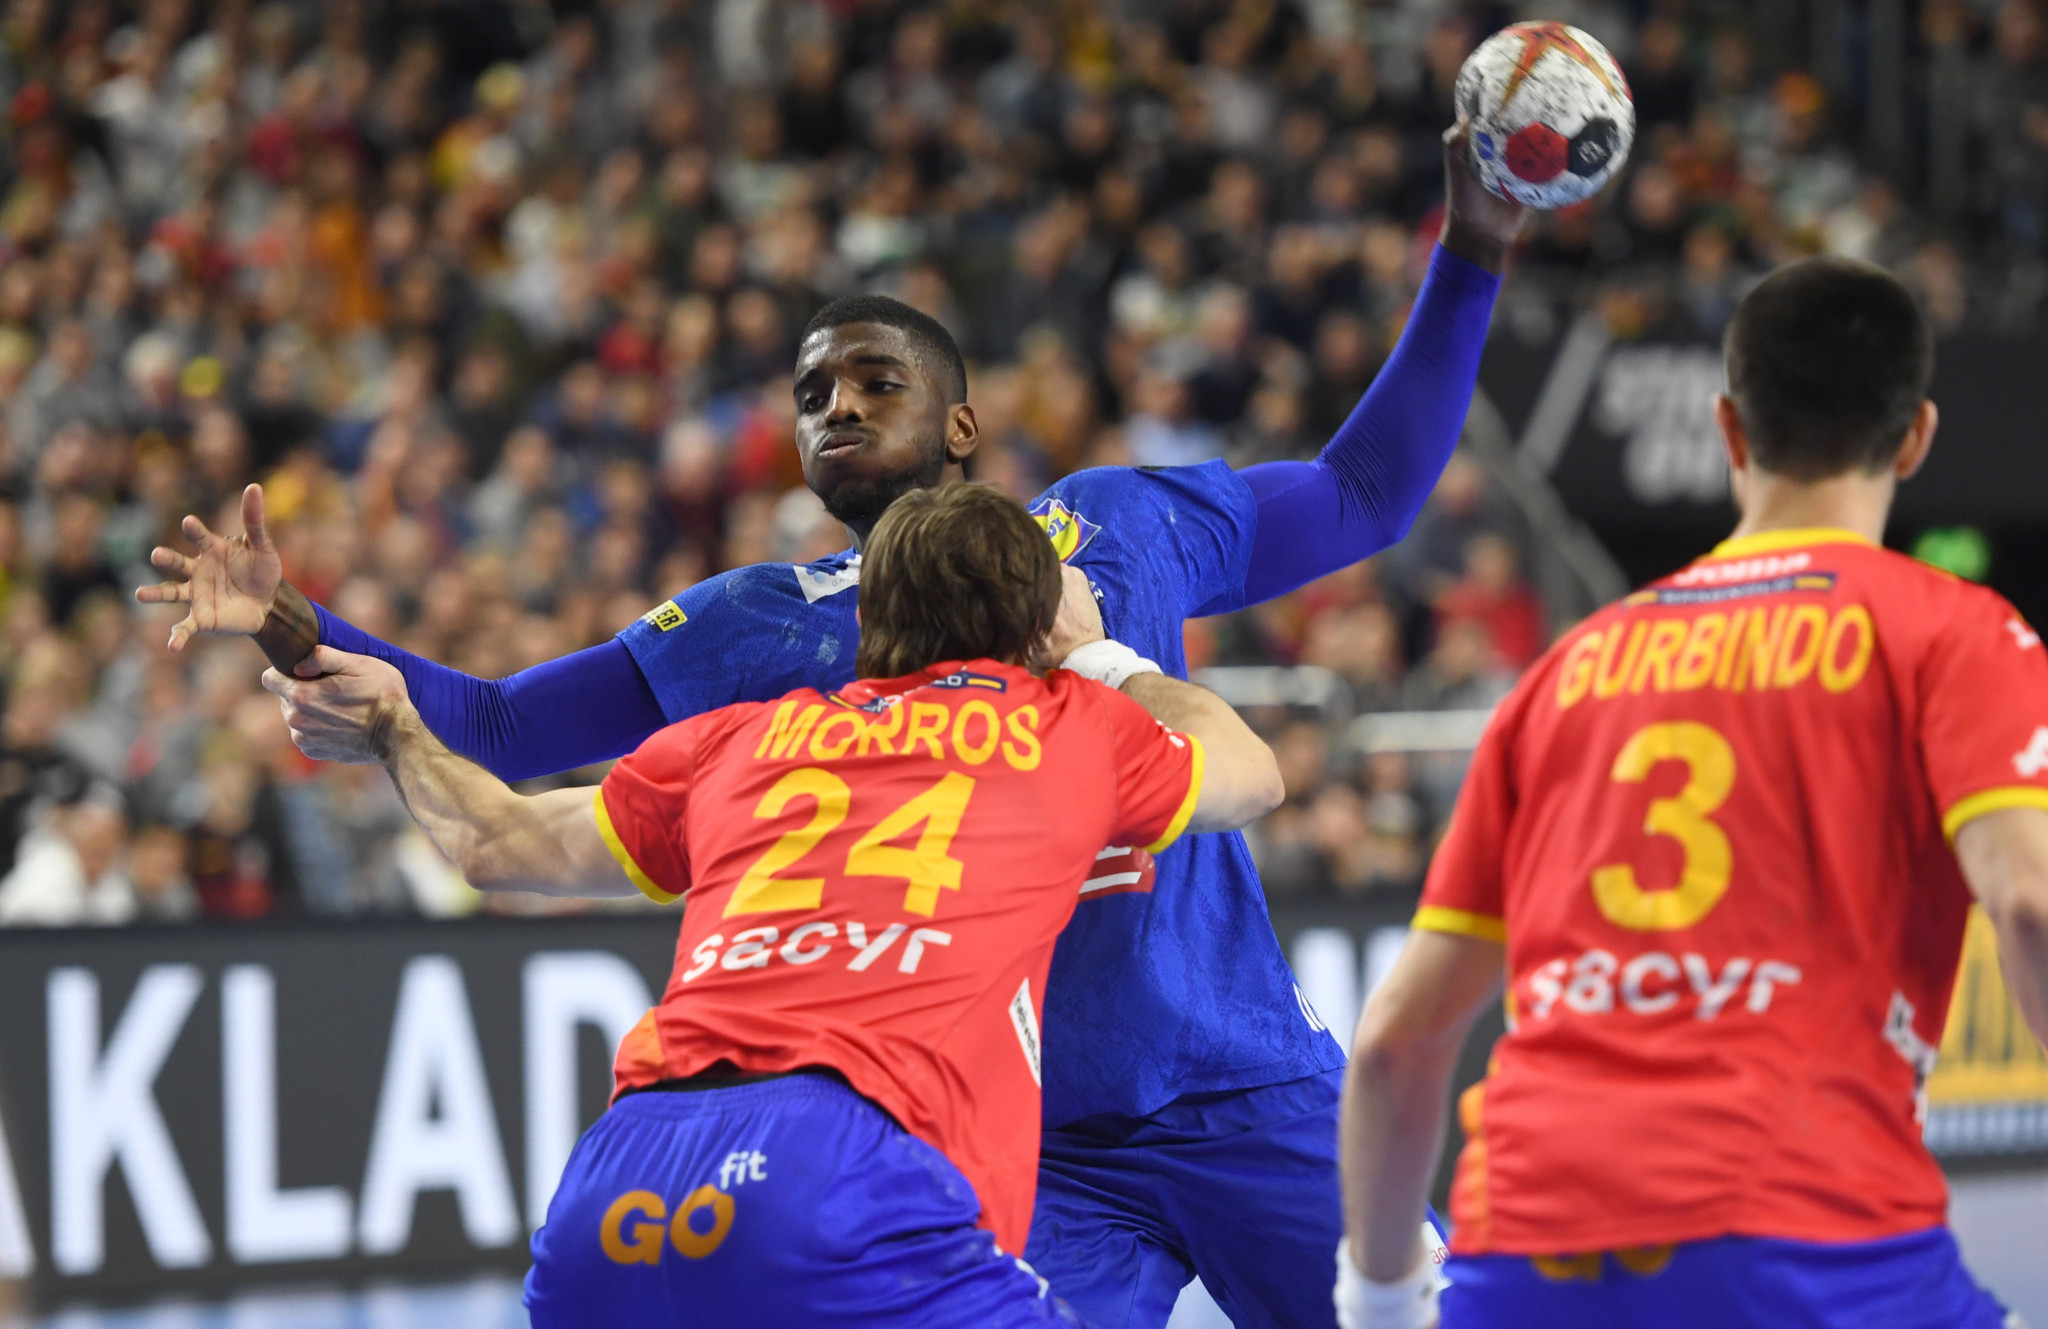 Defending champions France beat Spain as main round begins at IHF Men's Handball World Championship